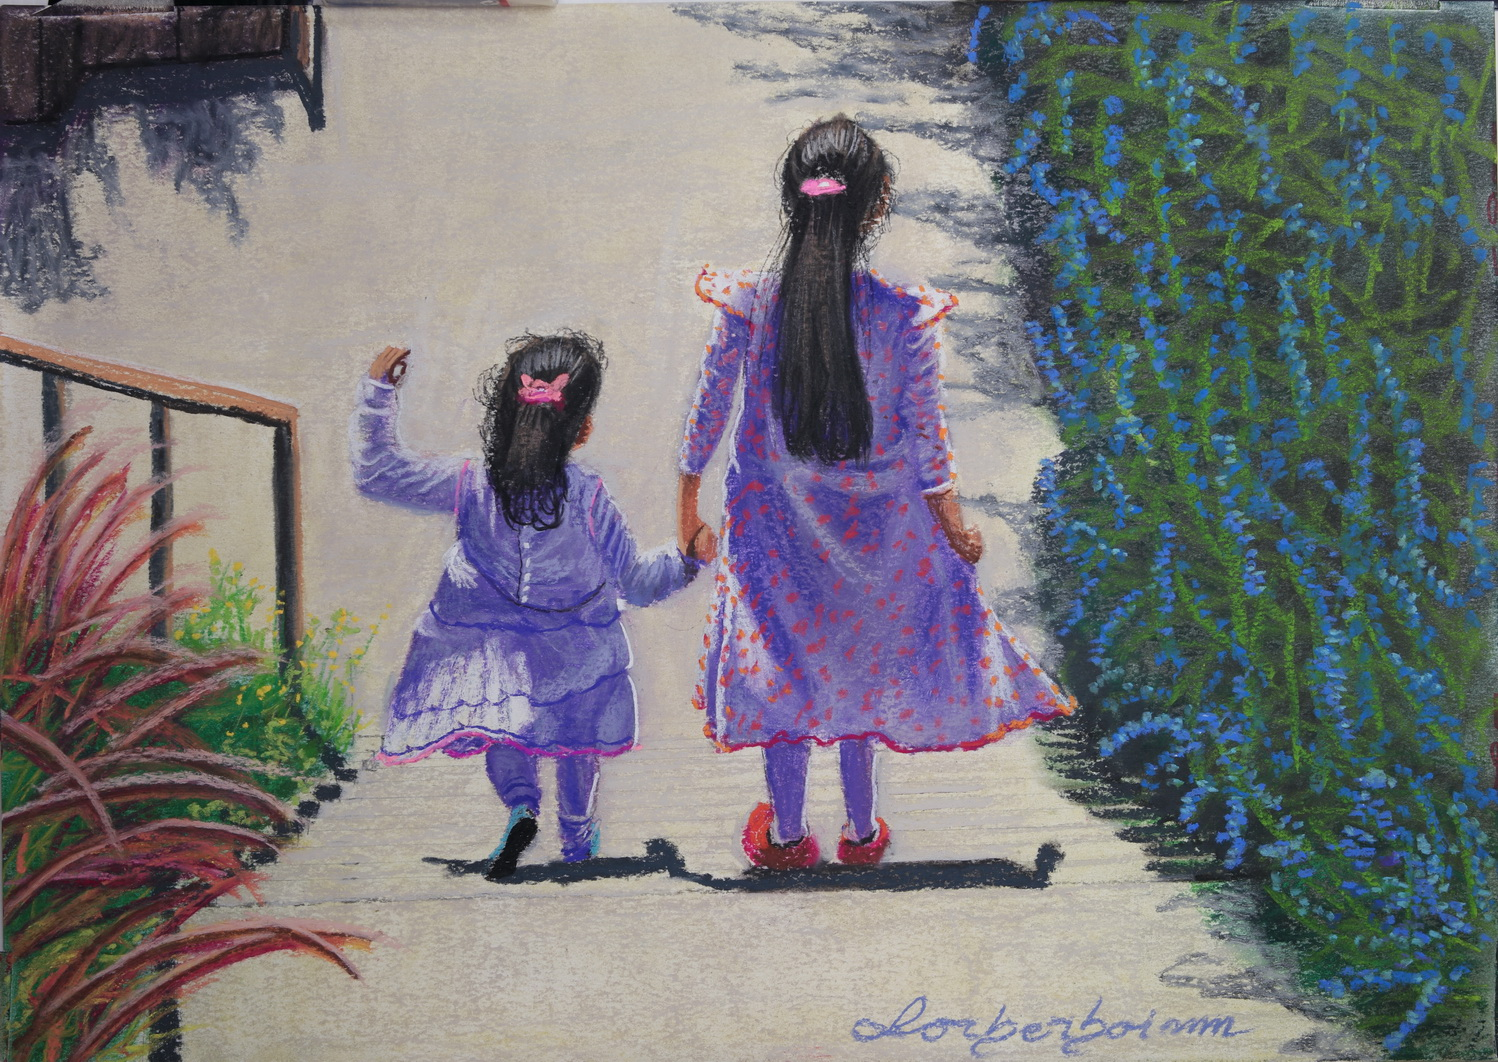 Two Sisters Holding Hands Togather, Lorberboim Soft Pastels Painting